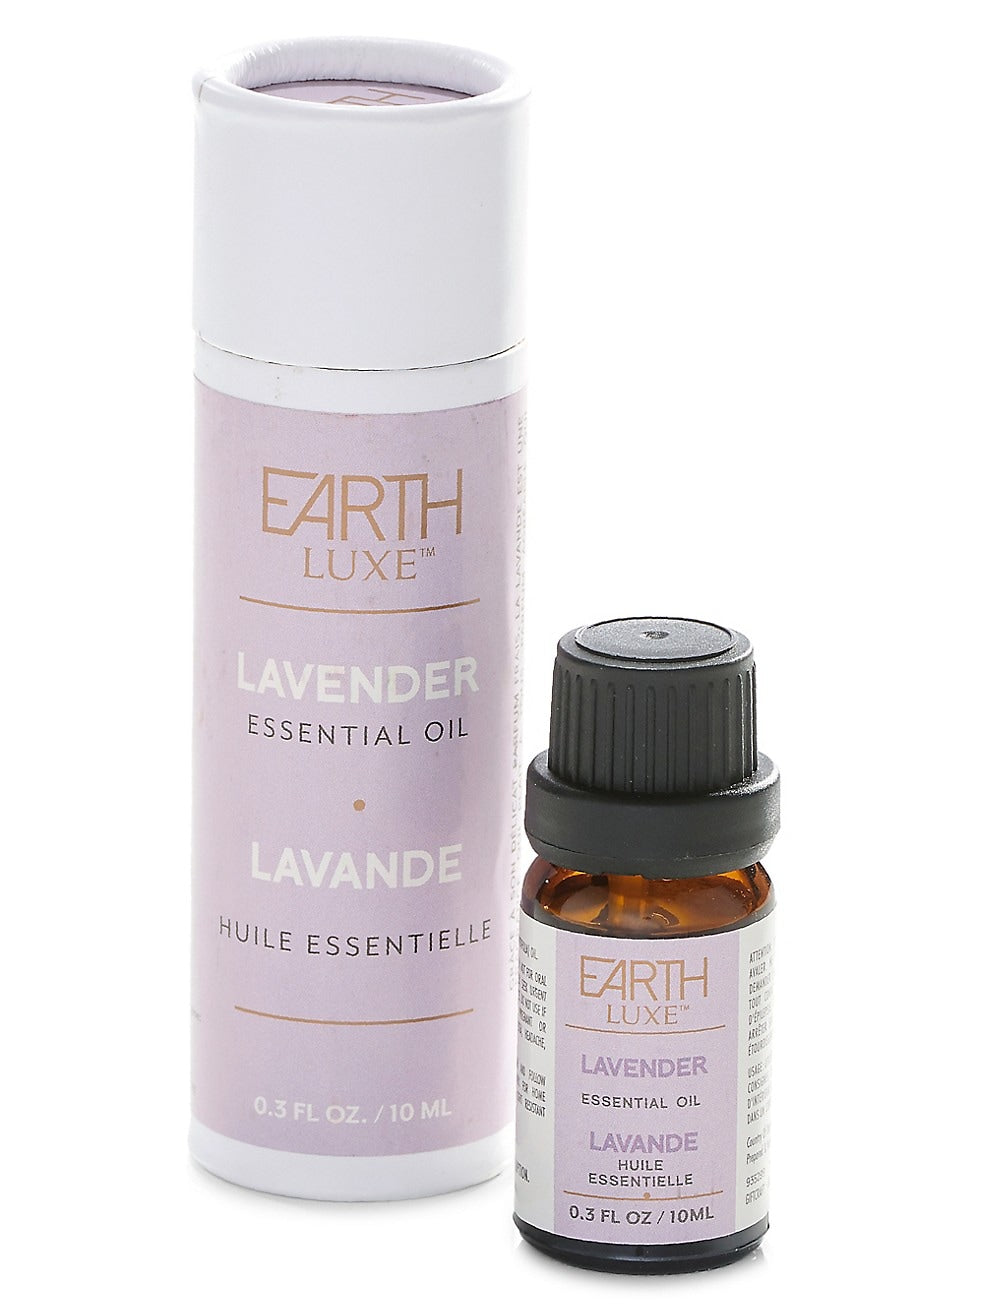 Earth Lux Lavender Essential Bottle and its Round Tube Package Beside It.